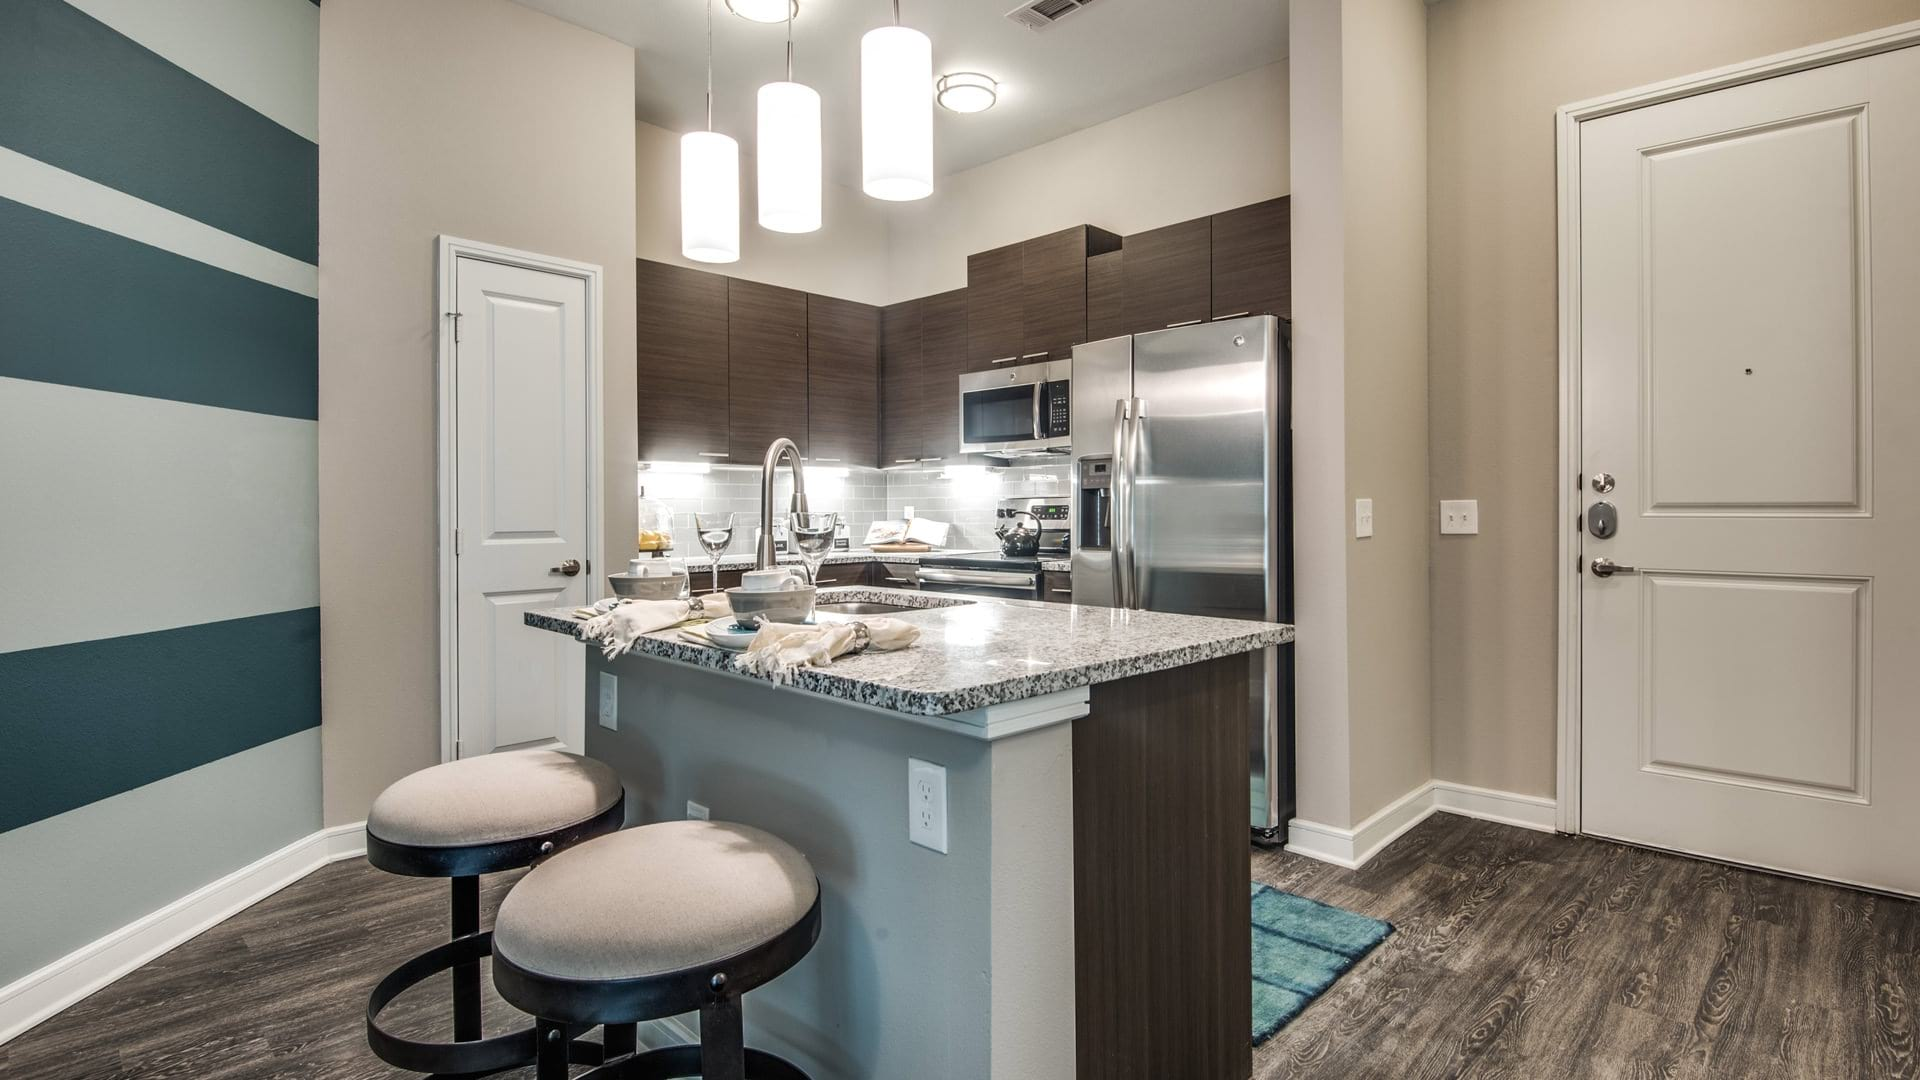 Las Colinas Living at Your Doorstep